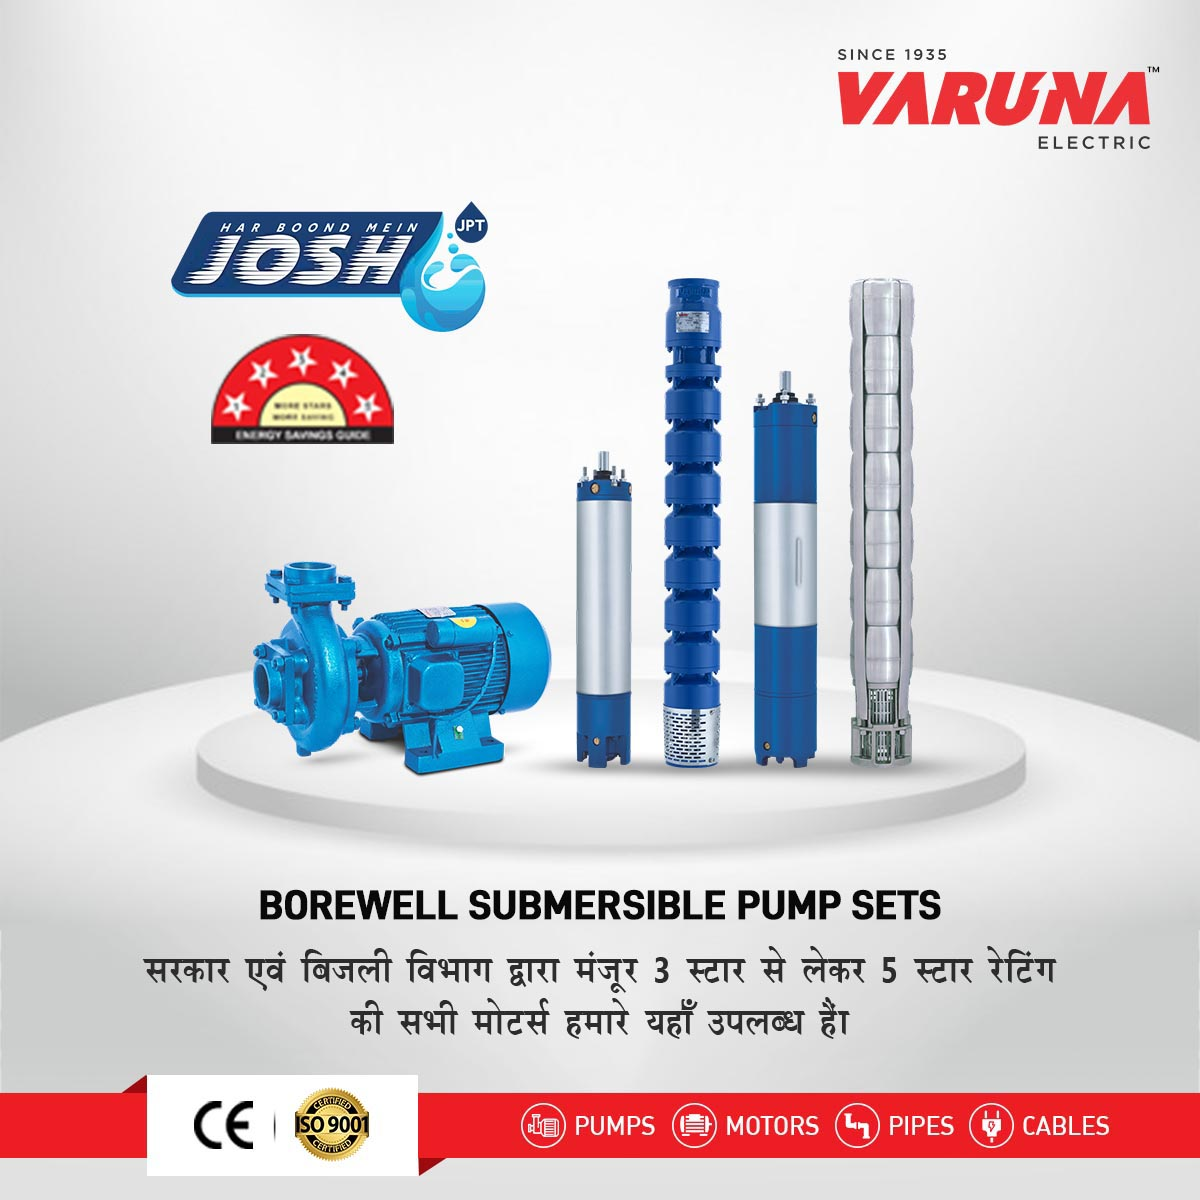 Top Submersible Pumps Manufacturer in India